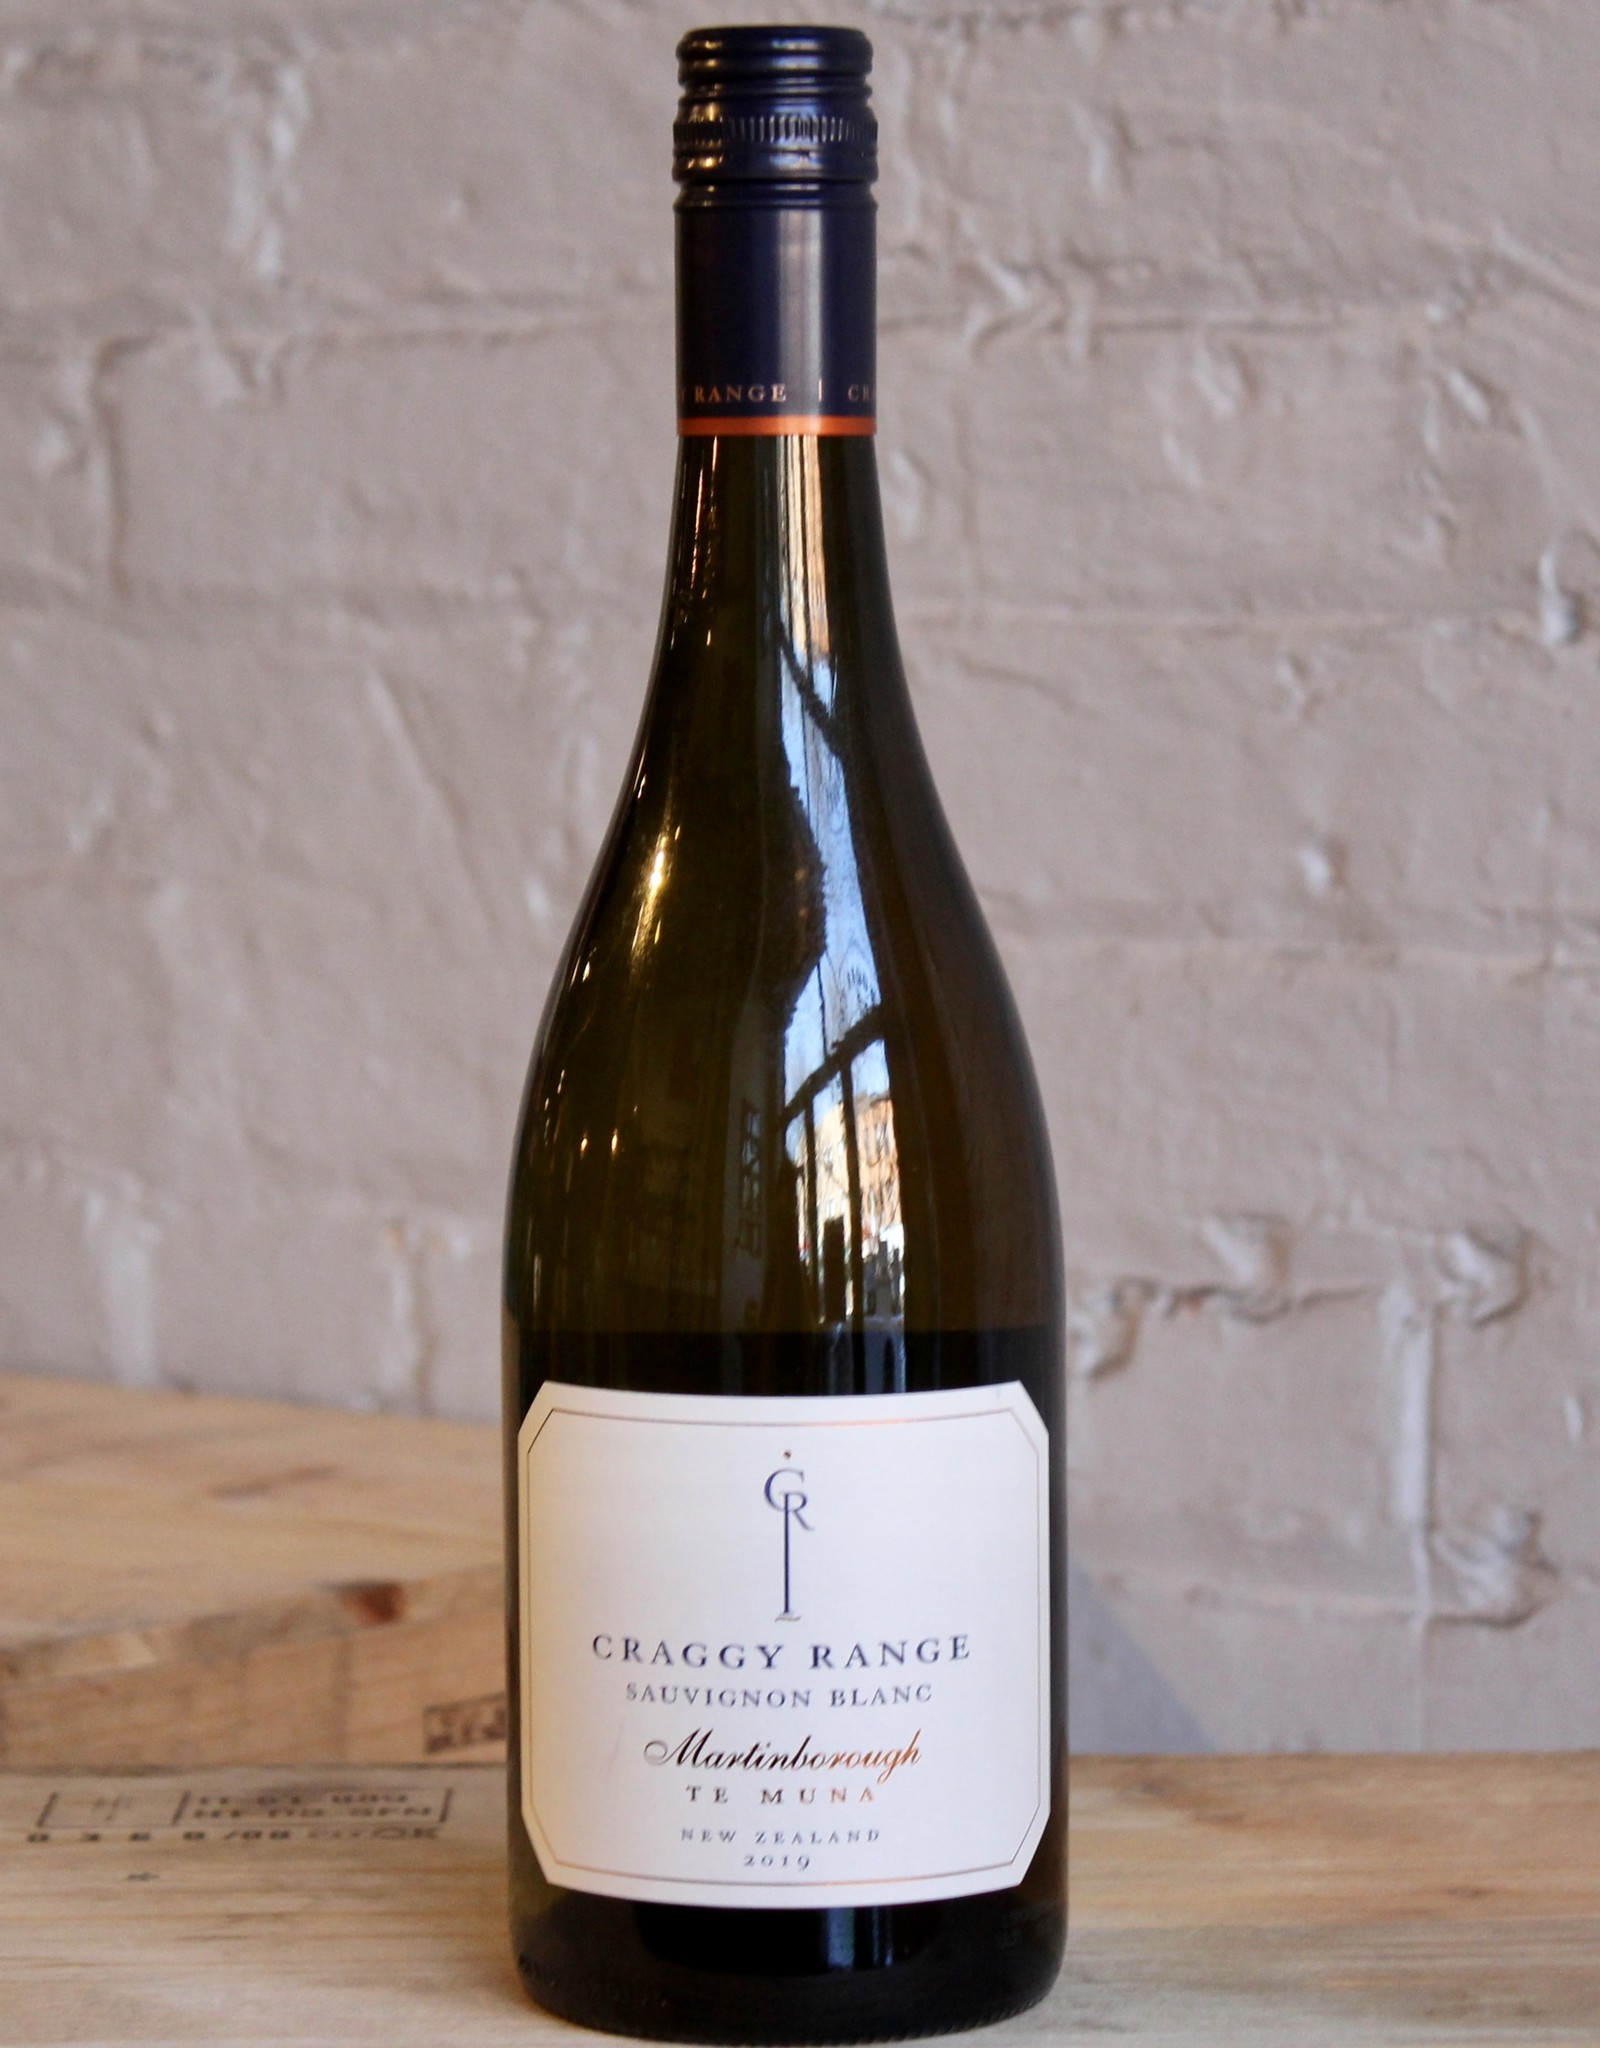 Wine 2019 Craggy Range Te Muna Sauvignon Blanc - Martinborough, New Zealand (750ml)